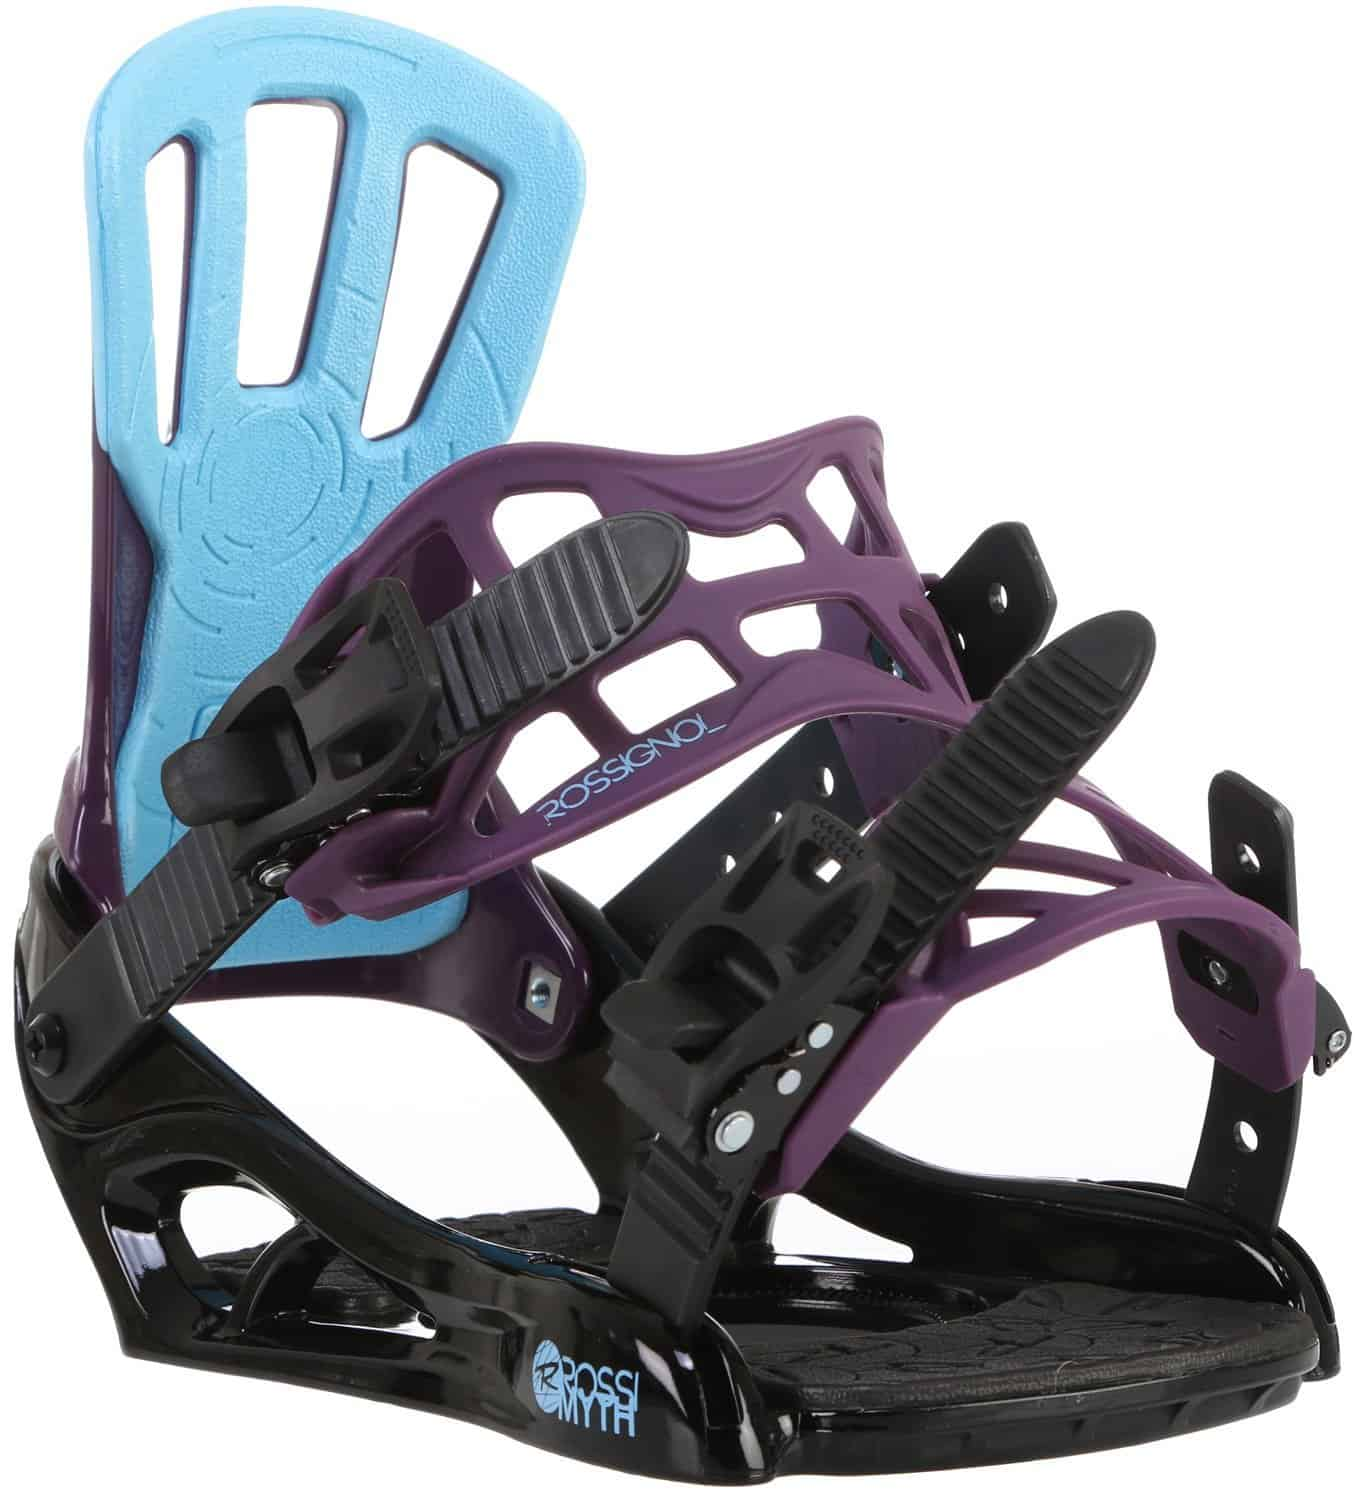 10 Best Snowboard Bindings Reviewed